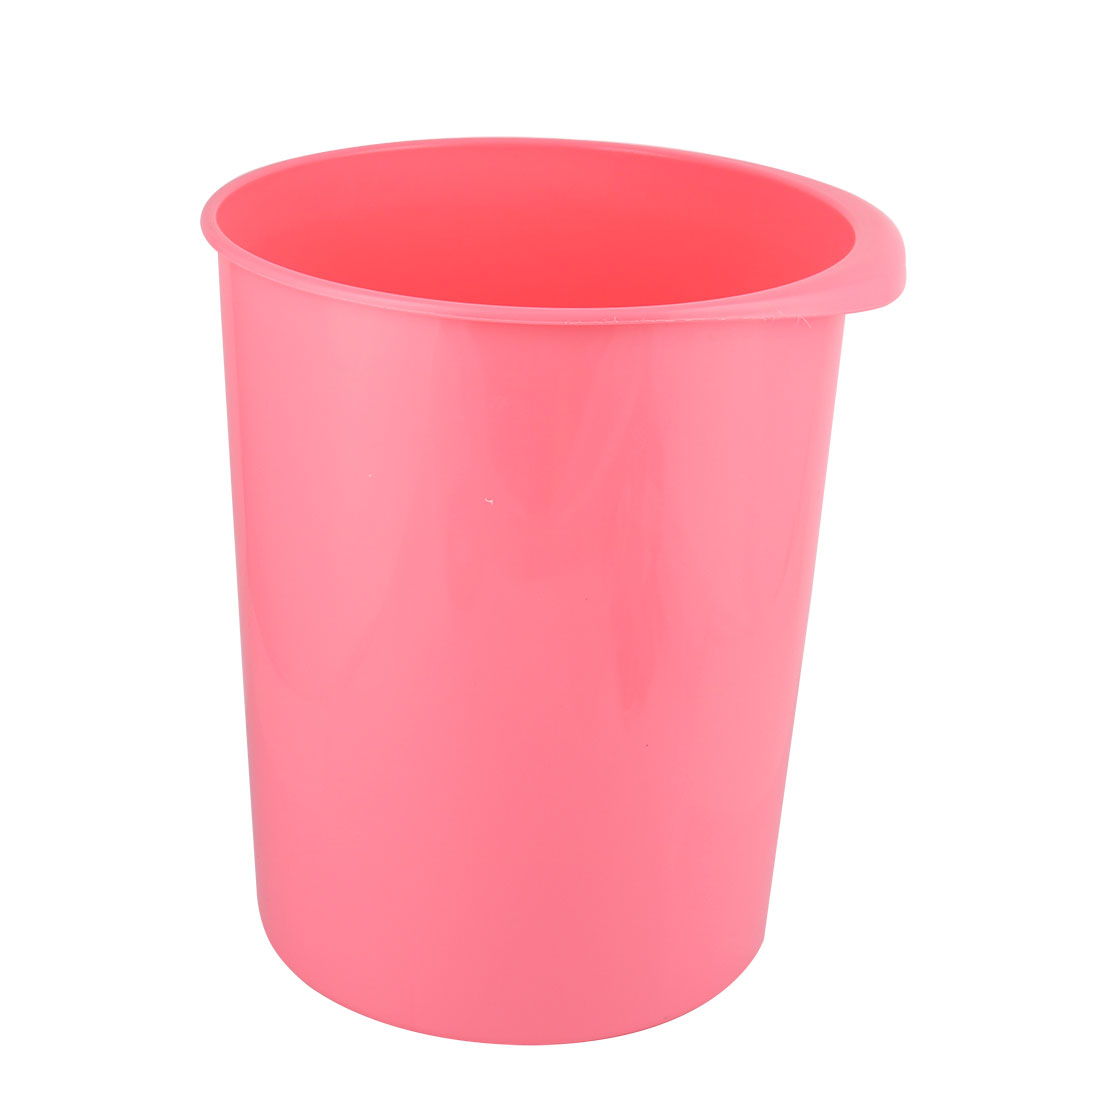 Garbage Bins Walmart Family Office Plastic Round Shaped Trash Can Dustbin Garbage Container Pink